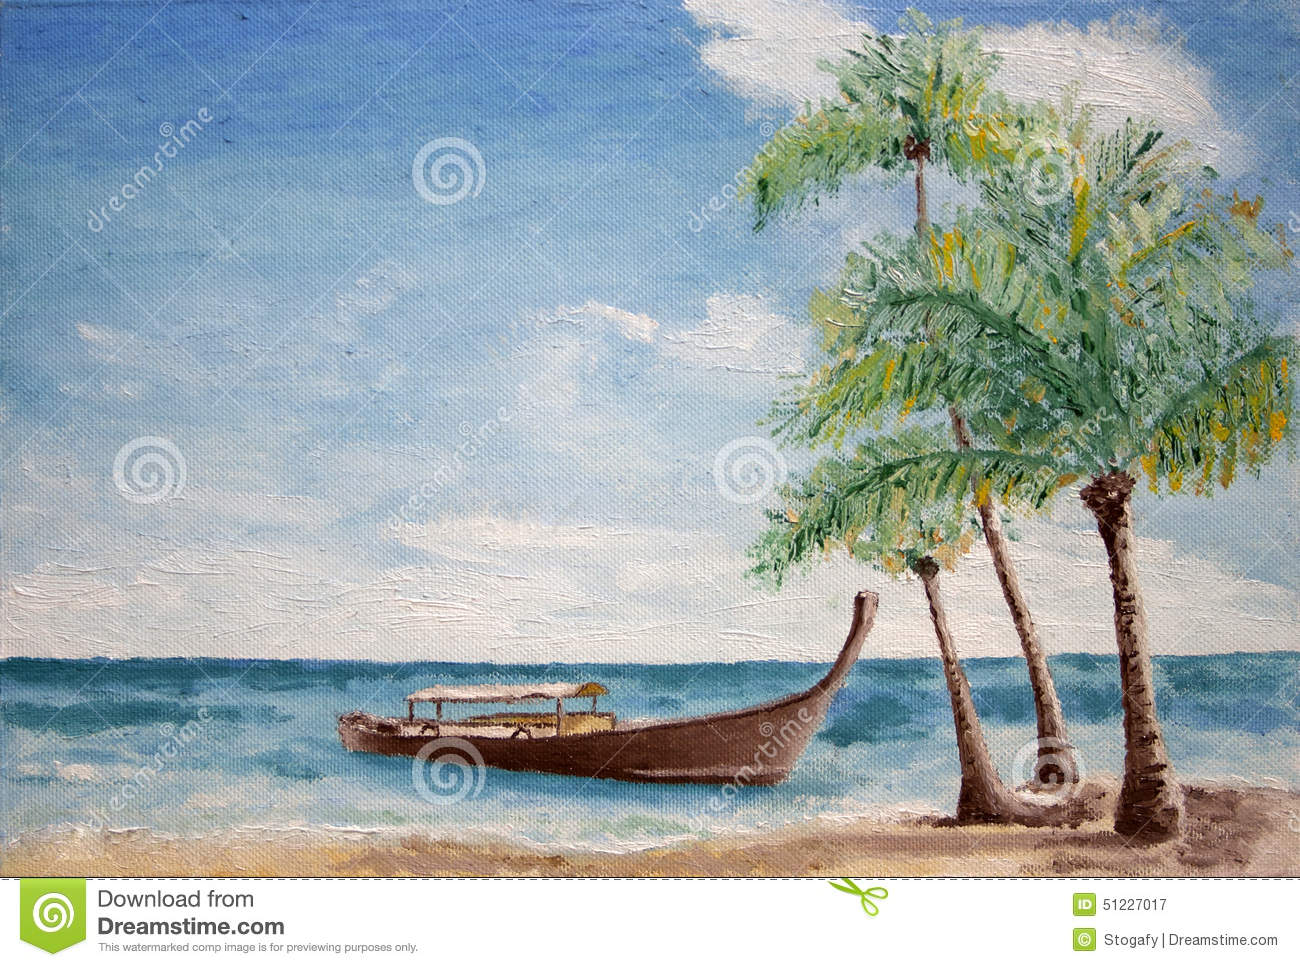 Download Painting Of Boat And Palm Trees Stock Image - Image of tropical, artistic: 51227017